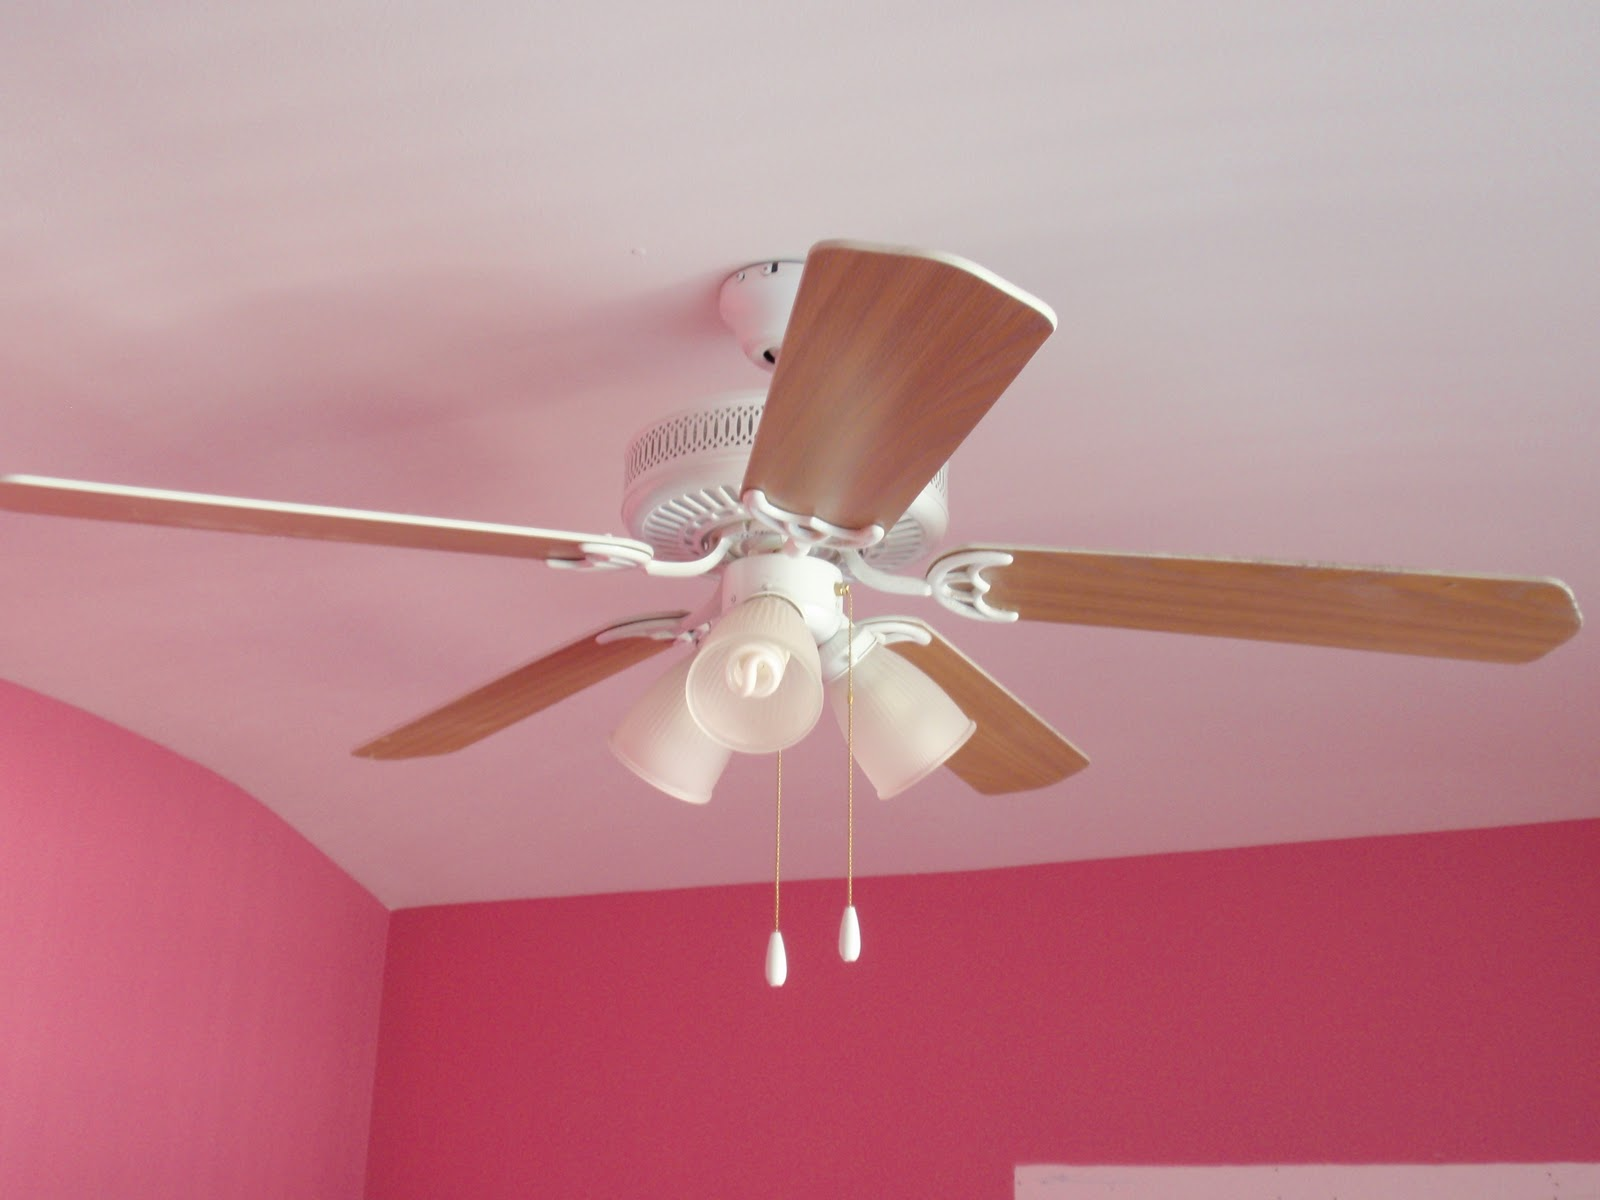 Diy by design how to transform an ugly ceiling fan how to transform an ugly ceiling fan aloadofball Gallery